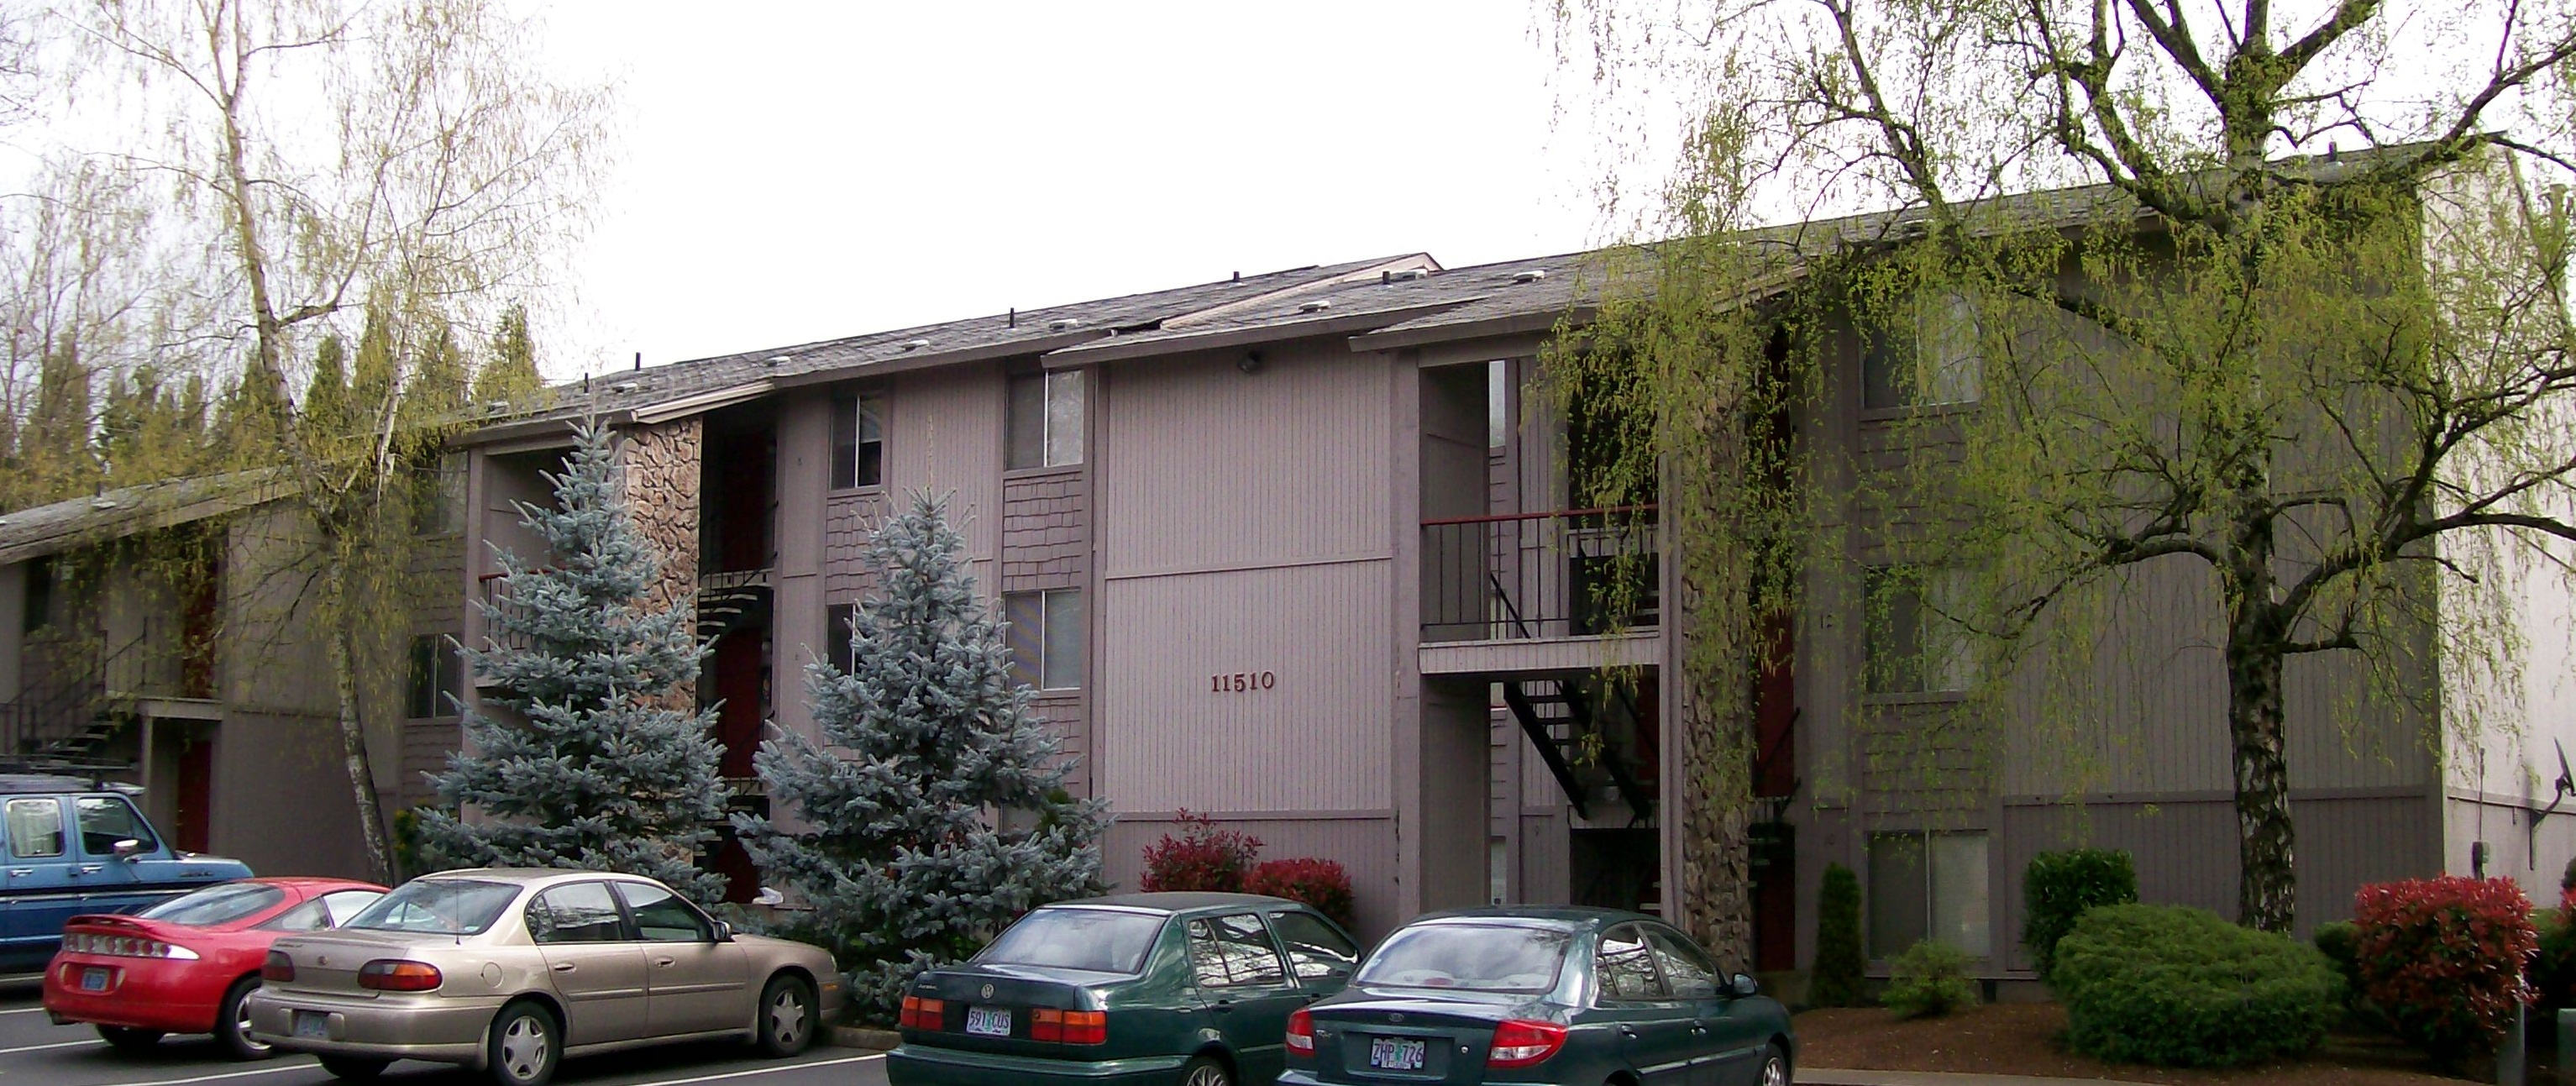 Lynmarie beaverton beaverton apartment complex for 3 bedroom apartments in beaverton oregon